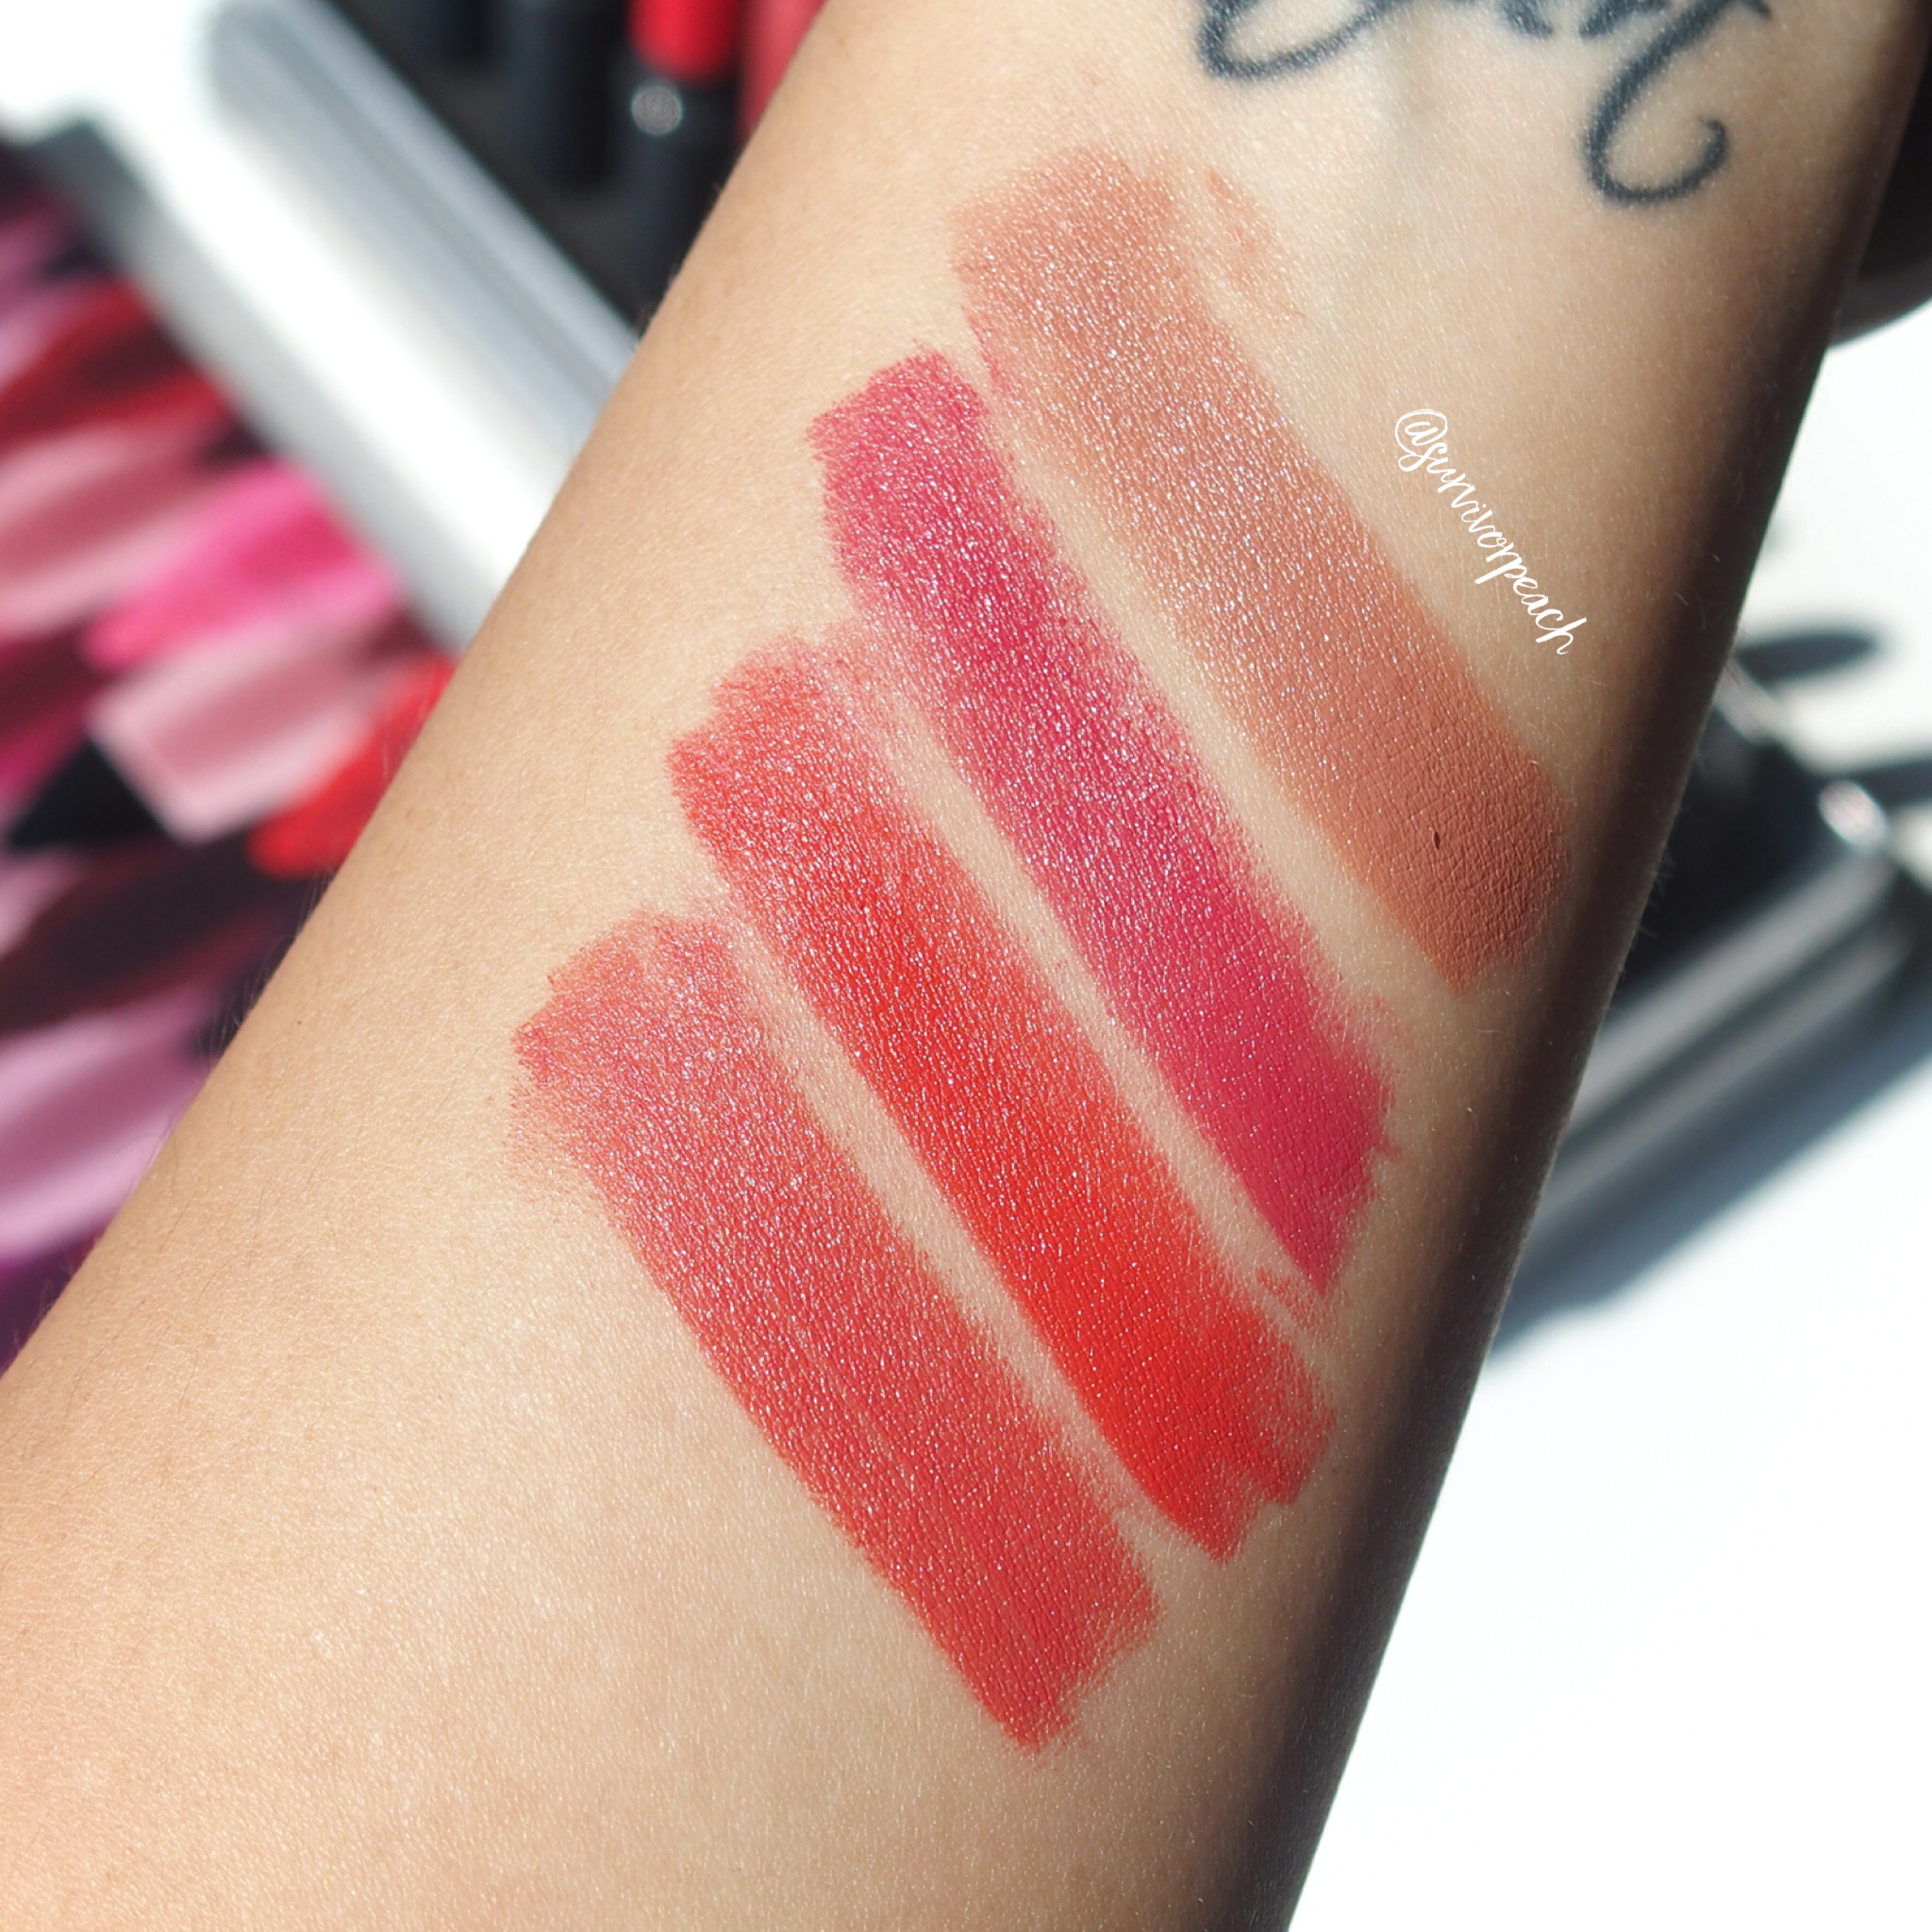 Swatches of the Bite Beauty Matte Creme Lip Crayon in shades Amaretto, Sucre, Blood Orange, Peche